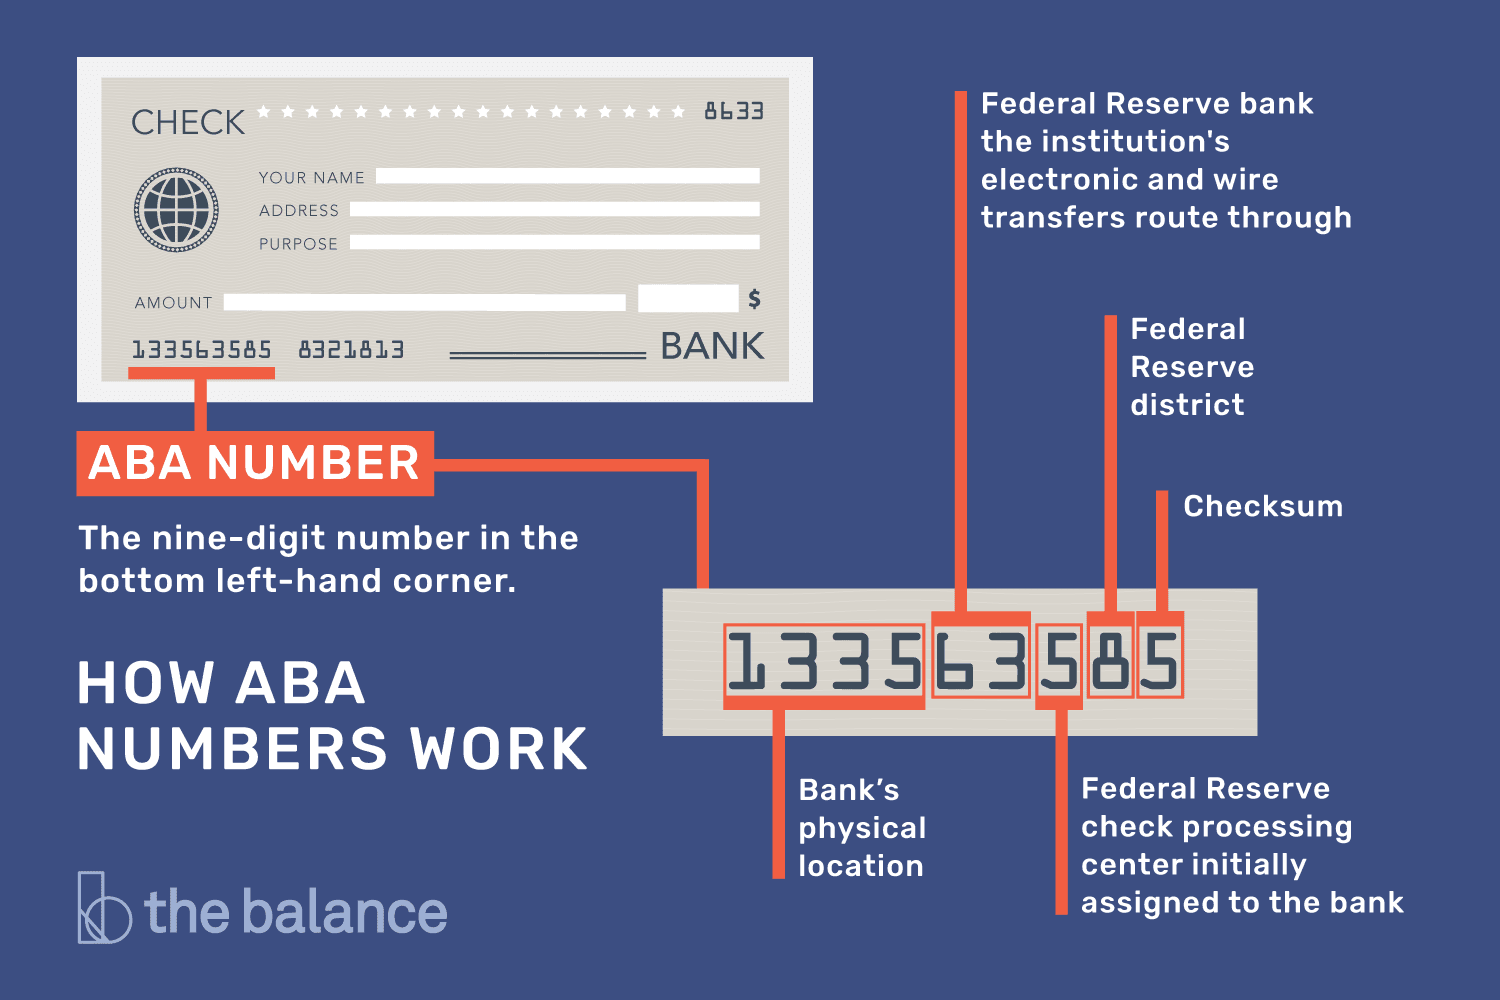 aba numbers: where to find them and how they work